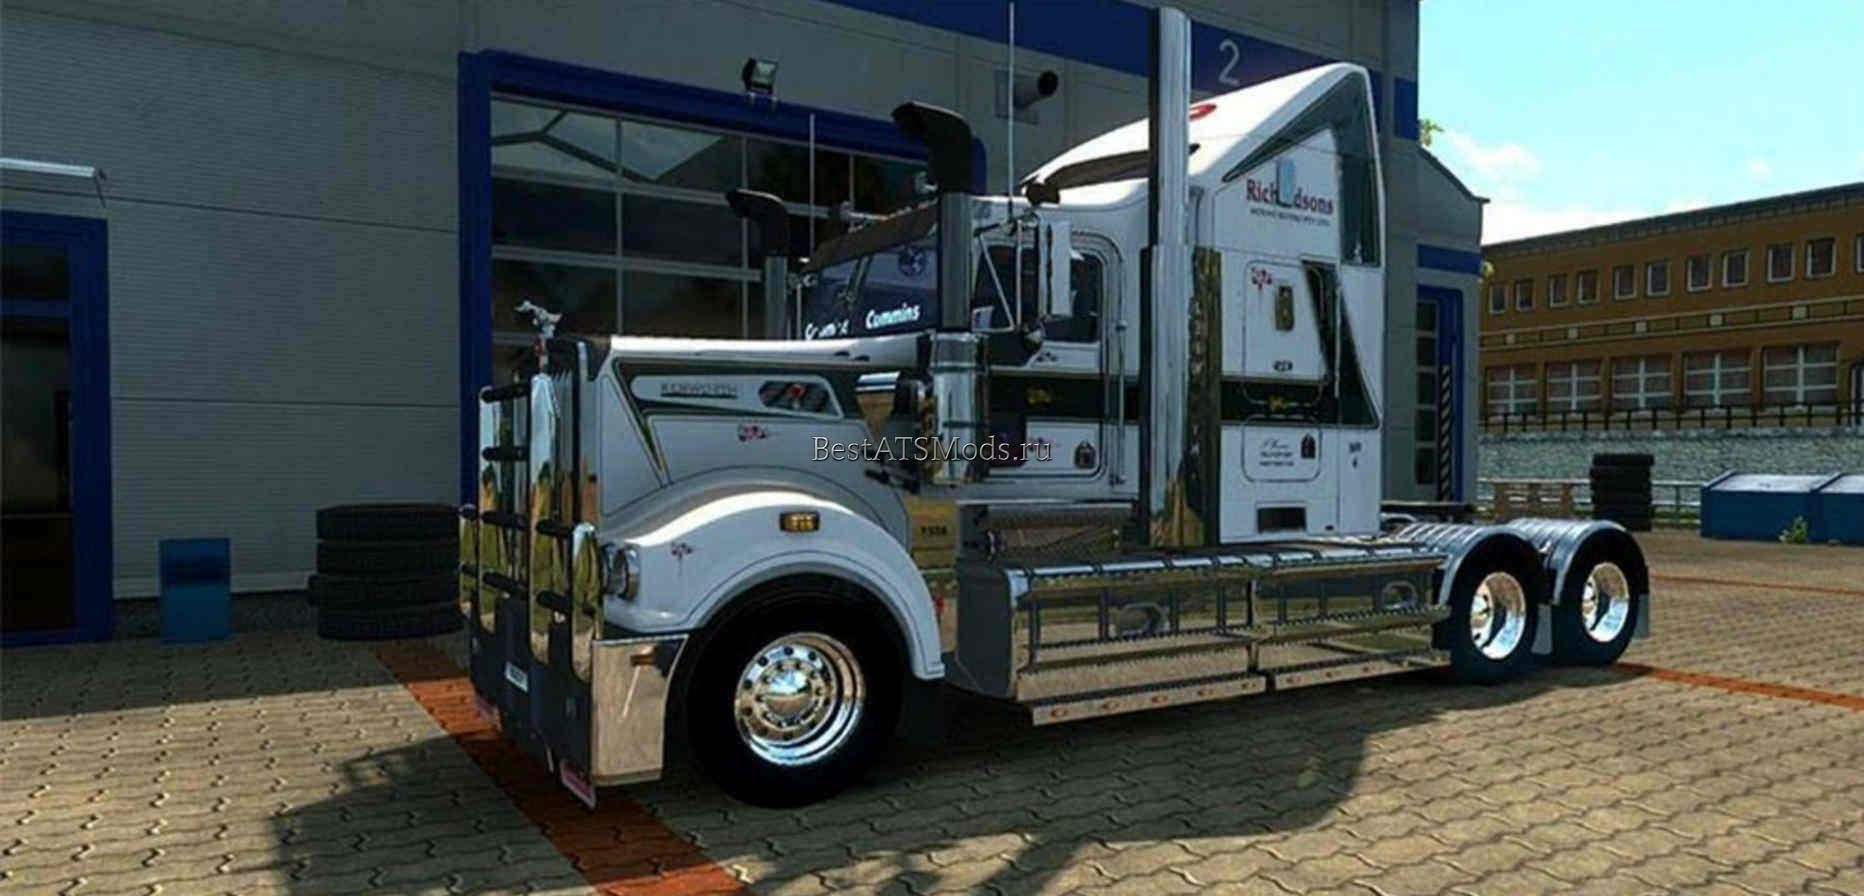 rsz_Мод_скин_richardsons_skin_for_the_kenworth_t908_mod_american_truck_simulator